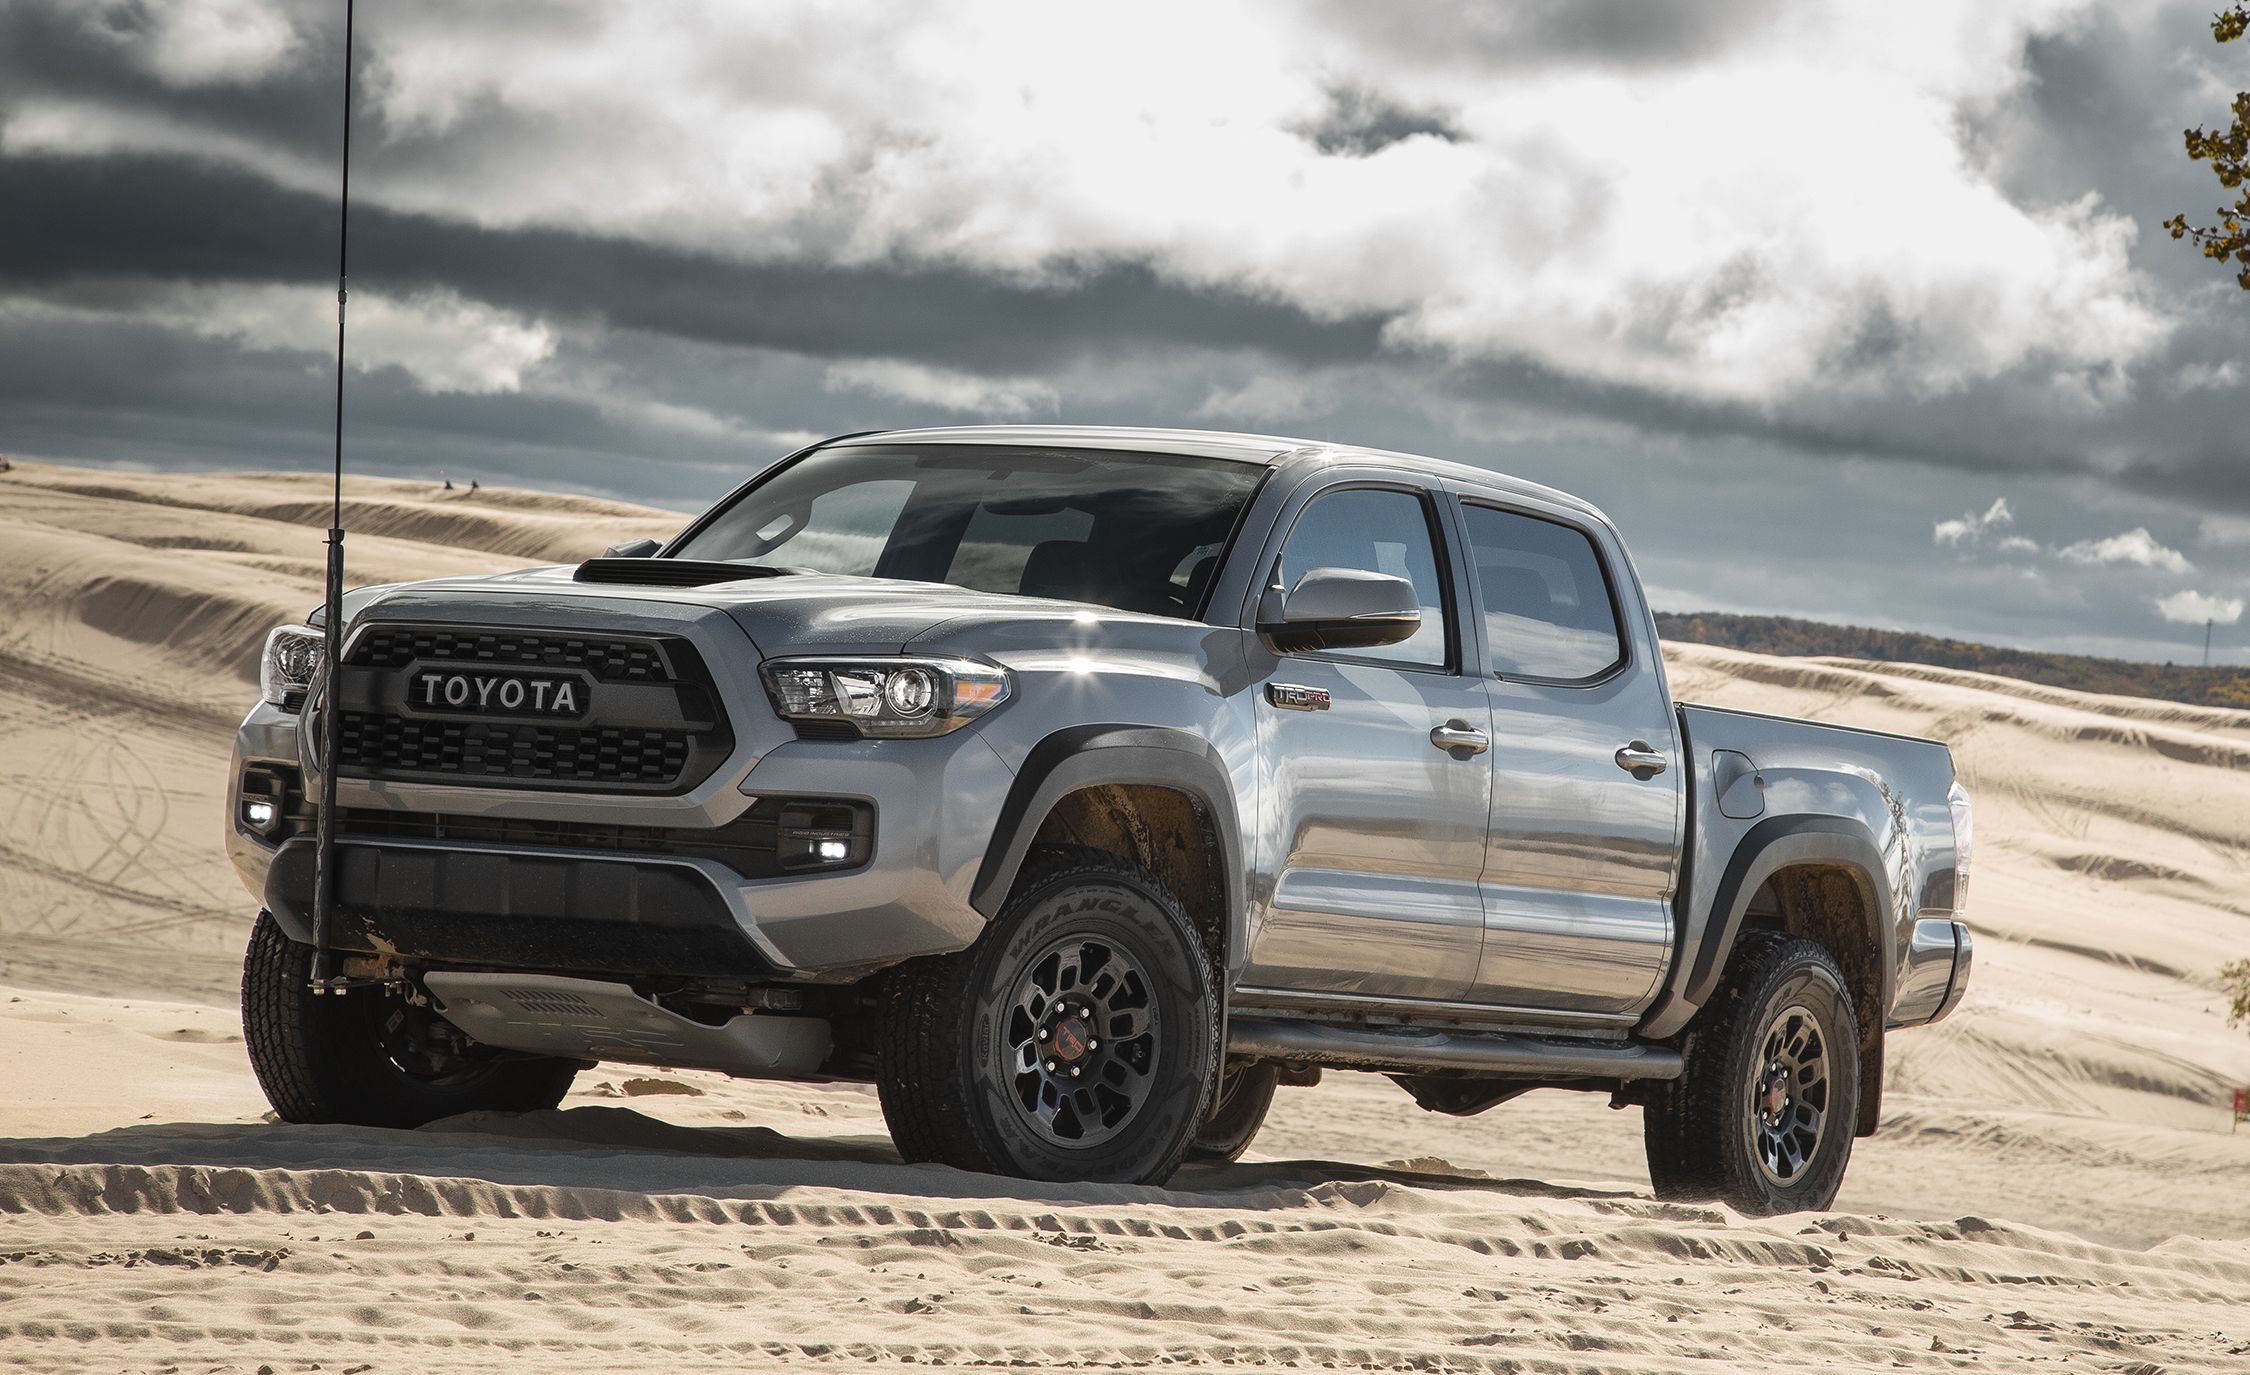 Toyota Tacoma Owners Manual: Correct driving posture